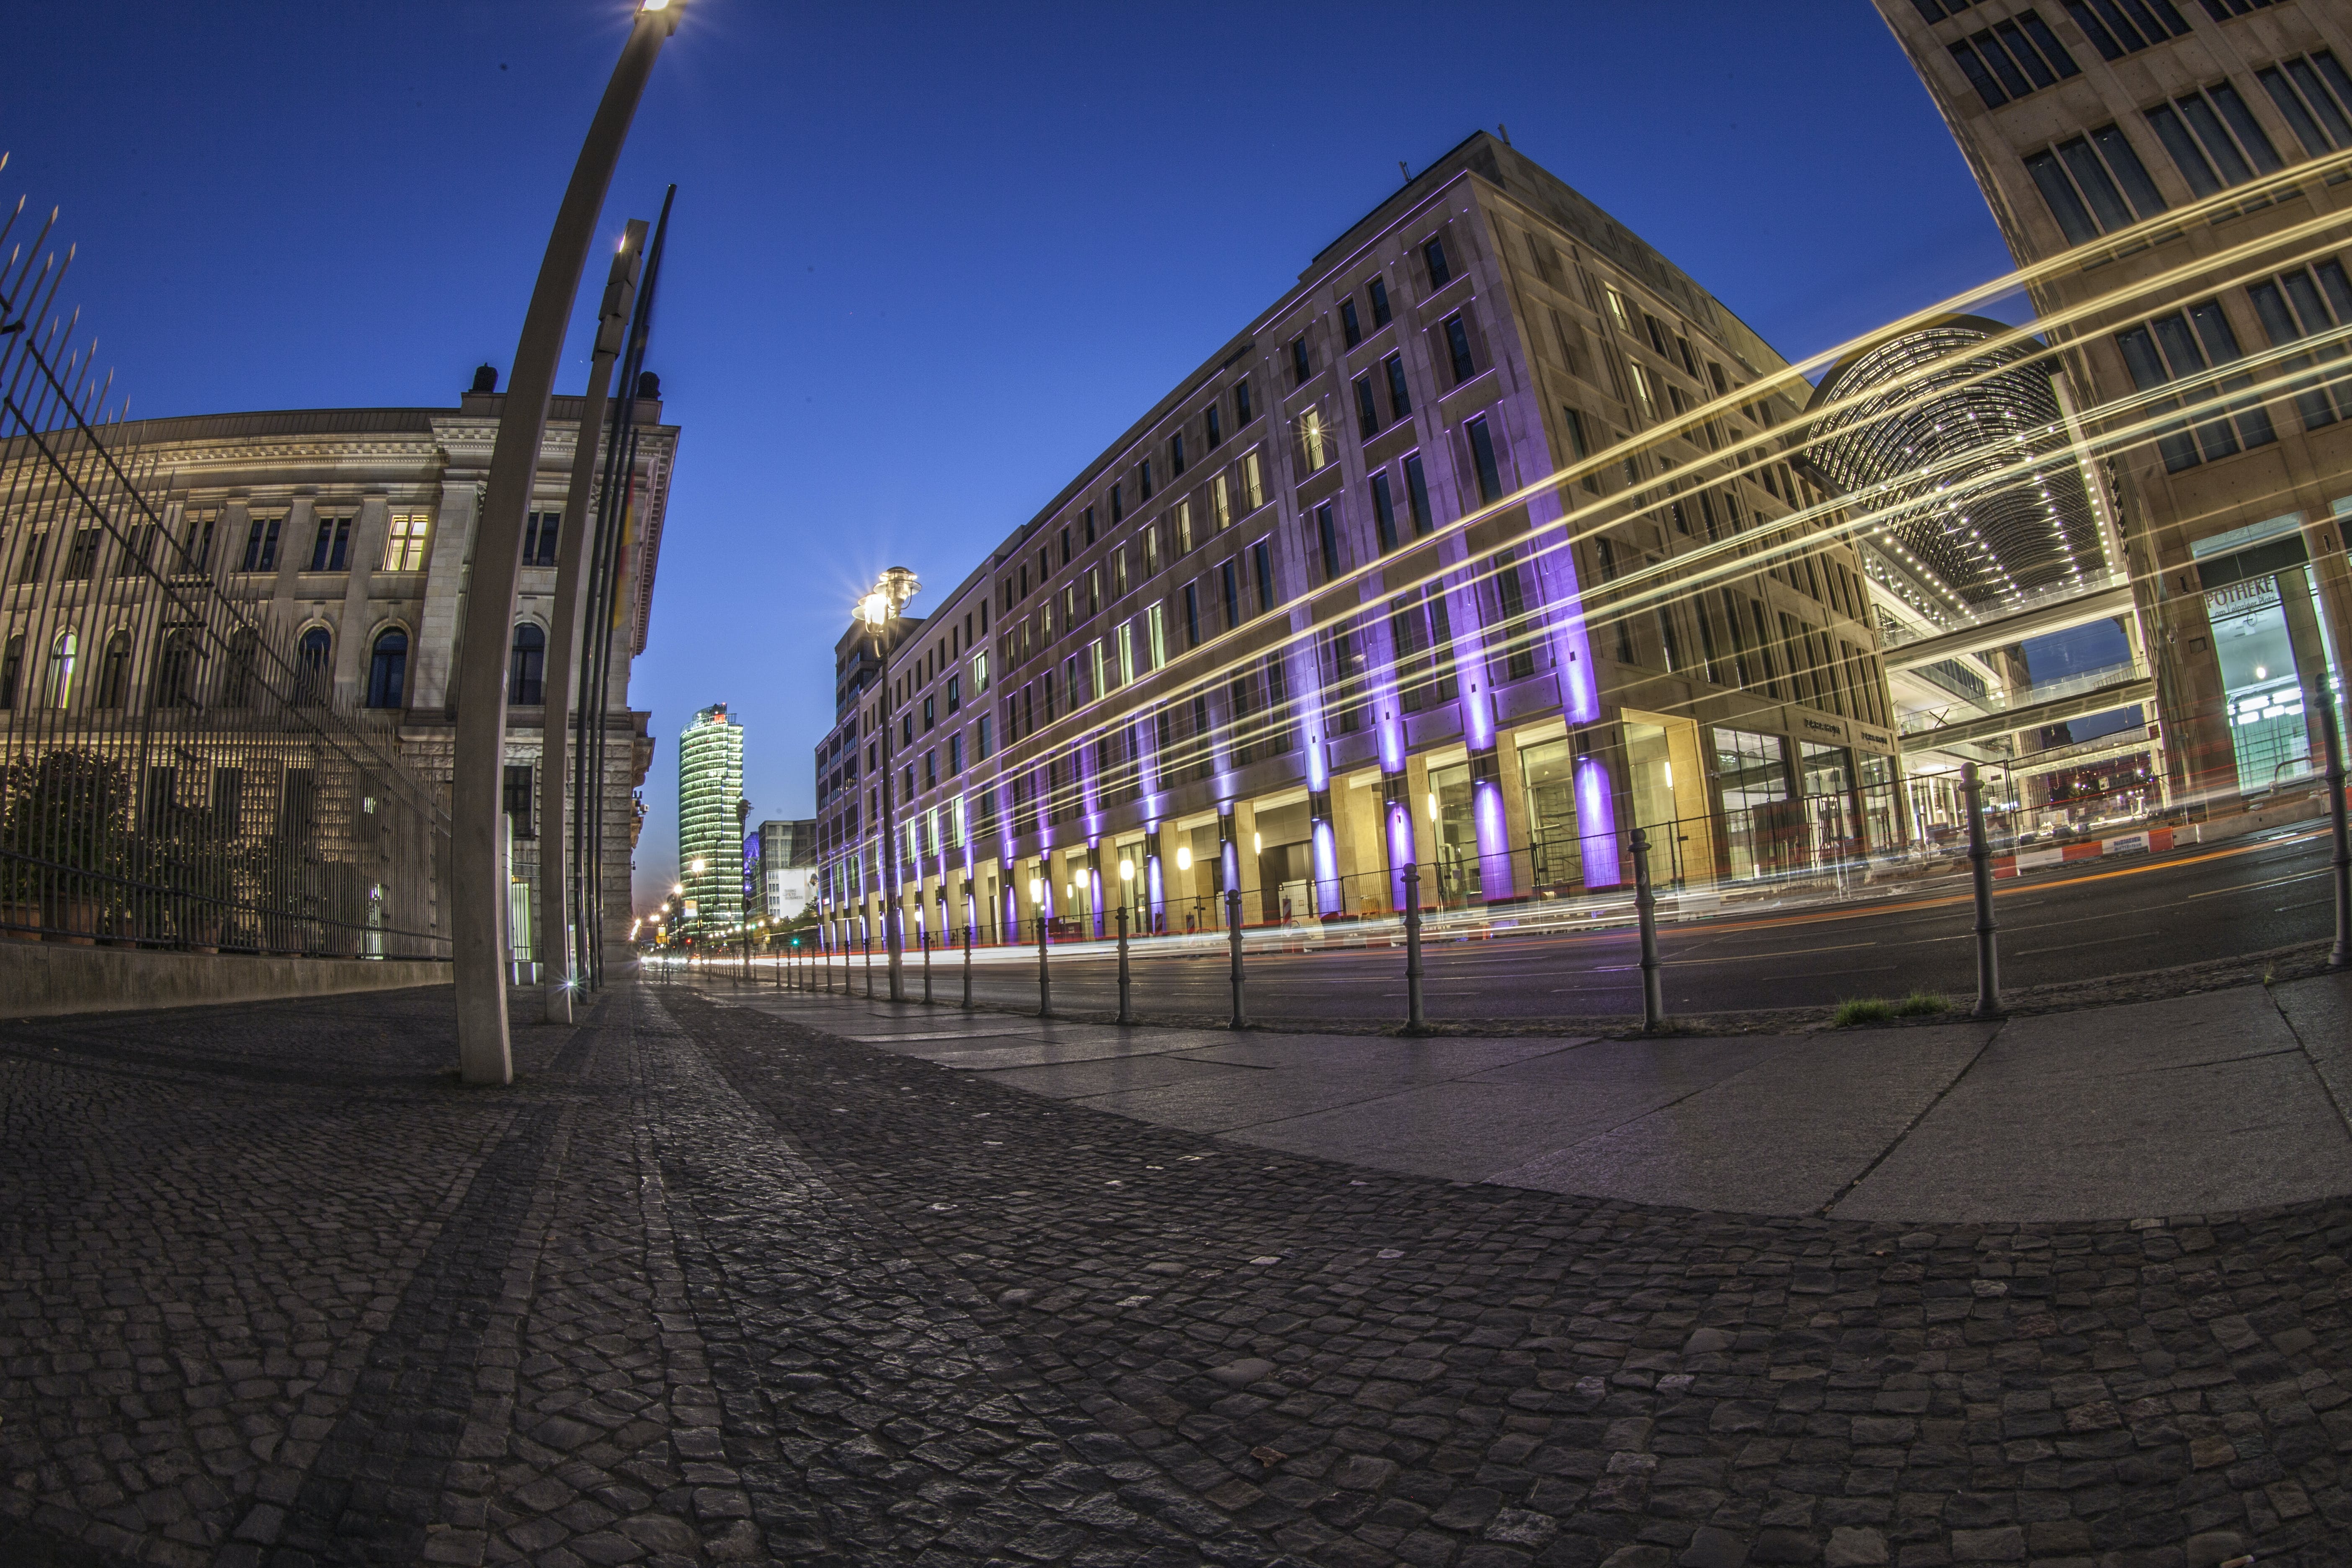 Time Lapse Photo of Buildings